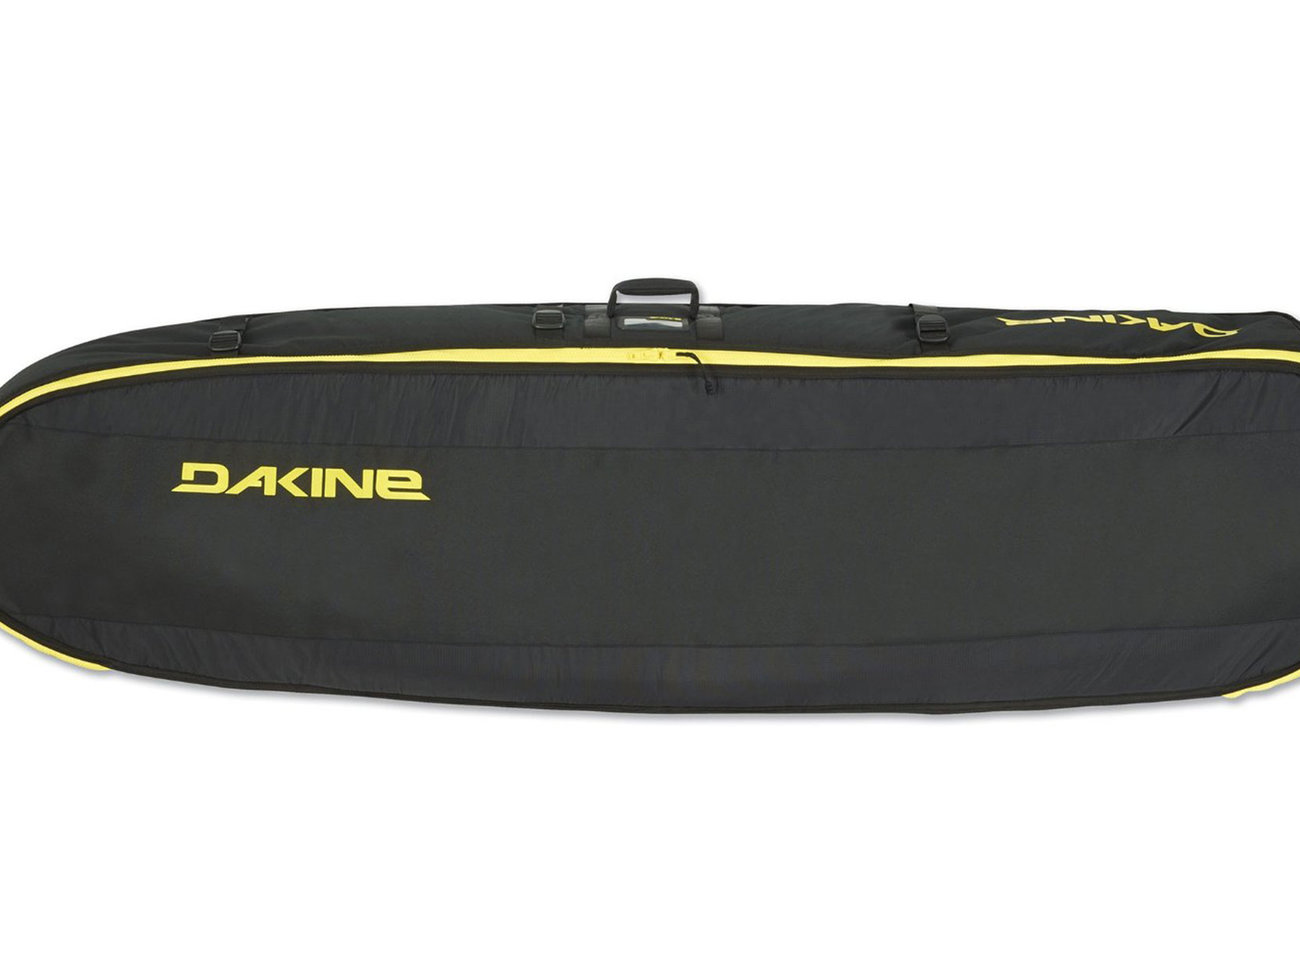 dakine-world-travel-bag-SURFGEAR0816.jpg